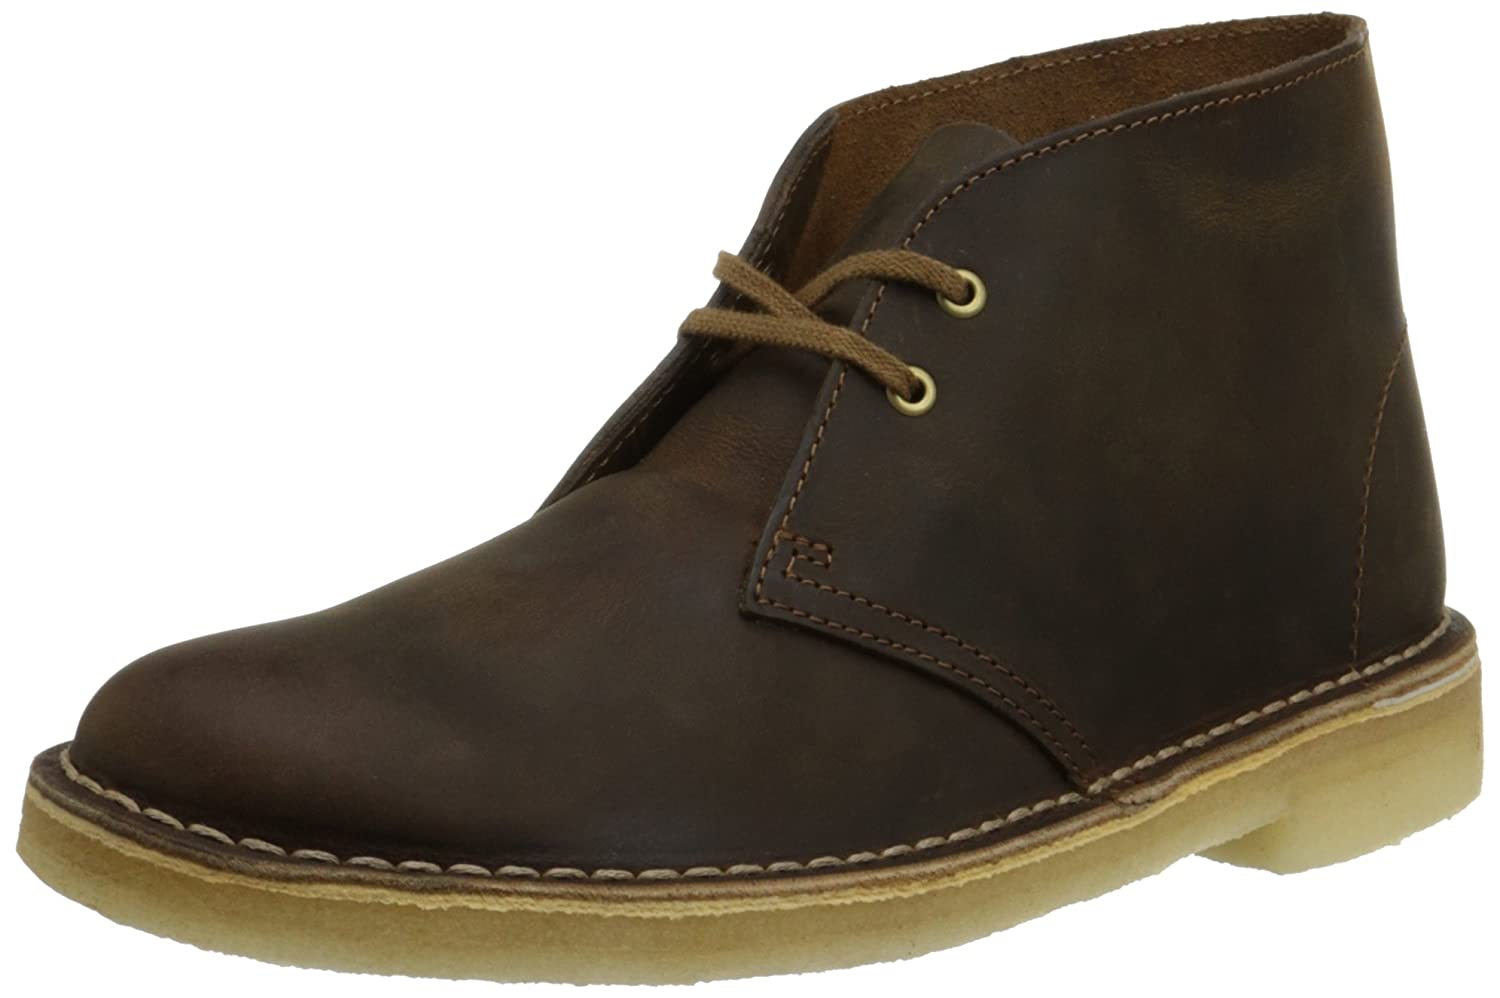 Amazing Clarks Originals Women39s Desert Boots  Beeswax Leather Womens